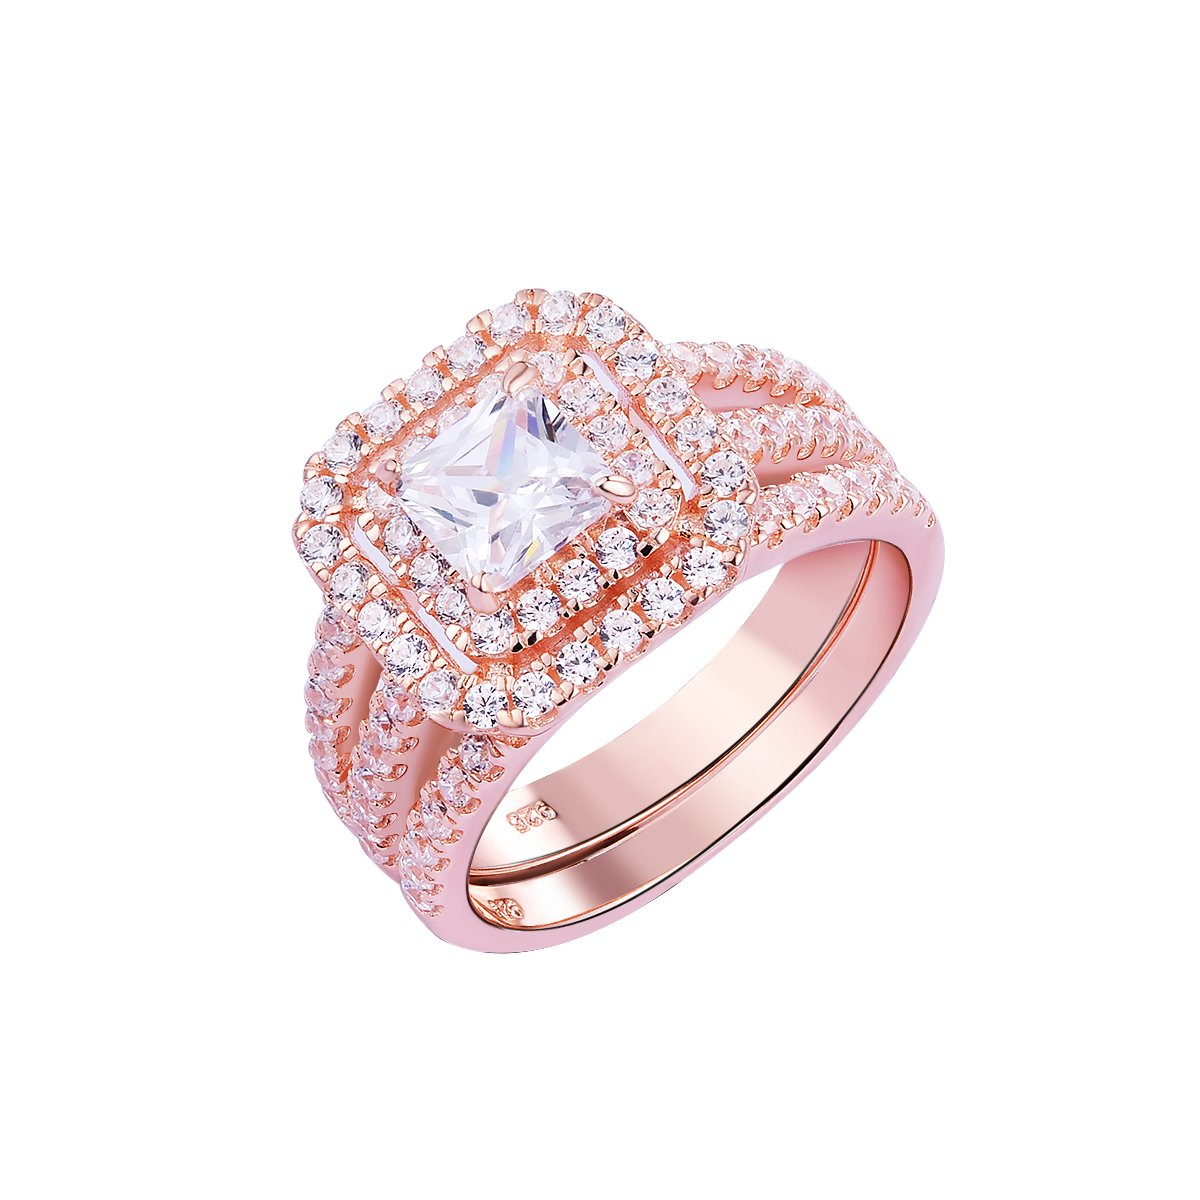 Newshe Wedding Engagement Ring Set For Women 925 Sterling Silver Rose 2.2ct Princess White Cz Size 5